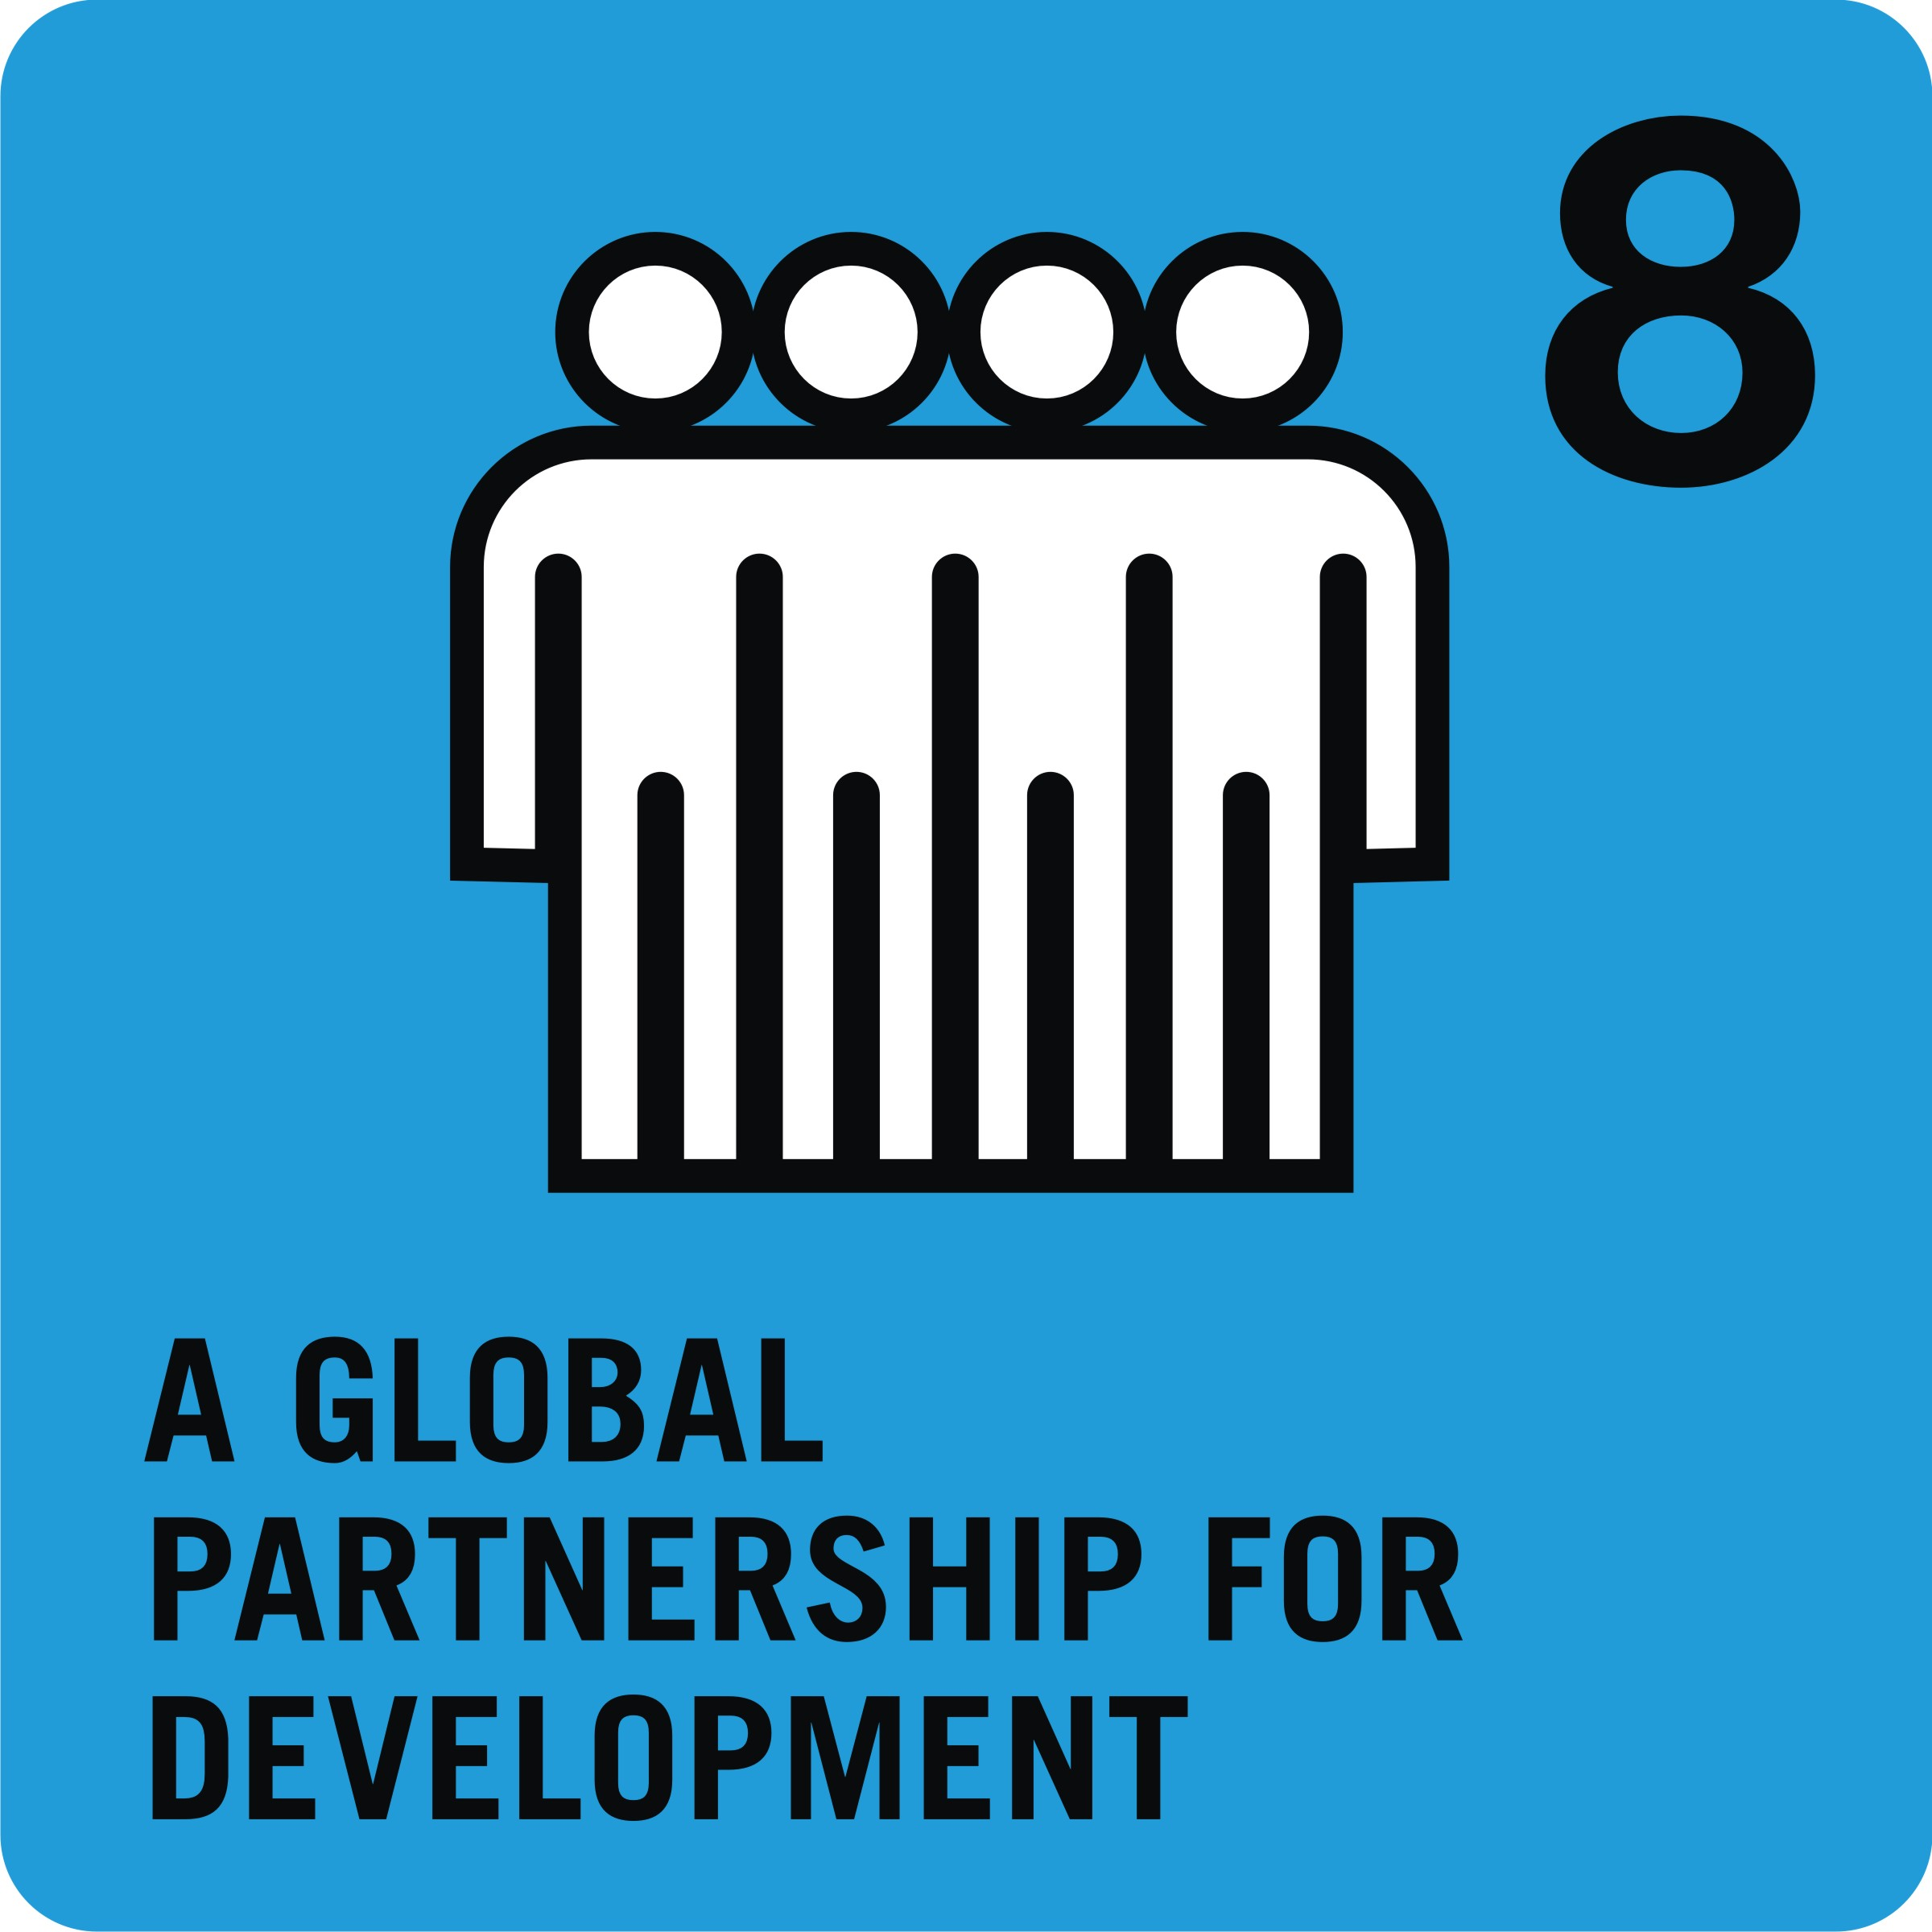 millennium development goals mdgs The millennium development goals (mdgs) are 8 goals,comprising 21 targets and 60 indicators, to halve extreme poverty by 2015 and create a global partnership for development.